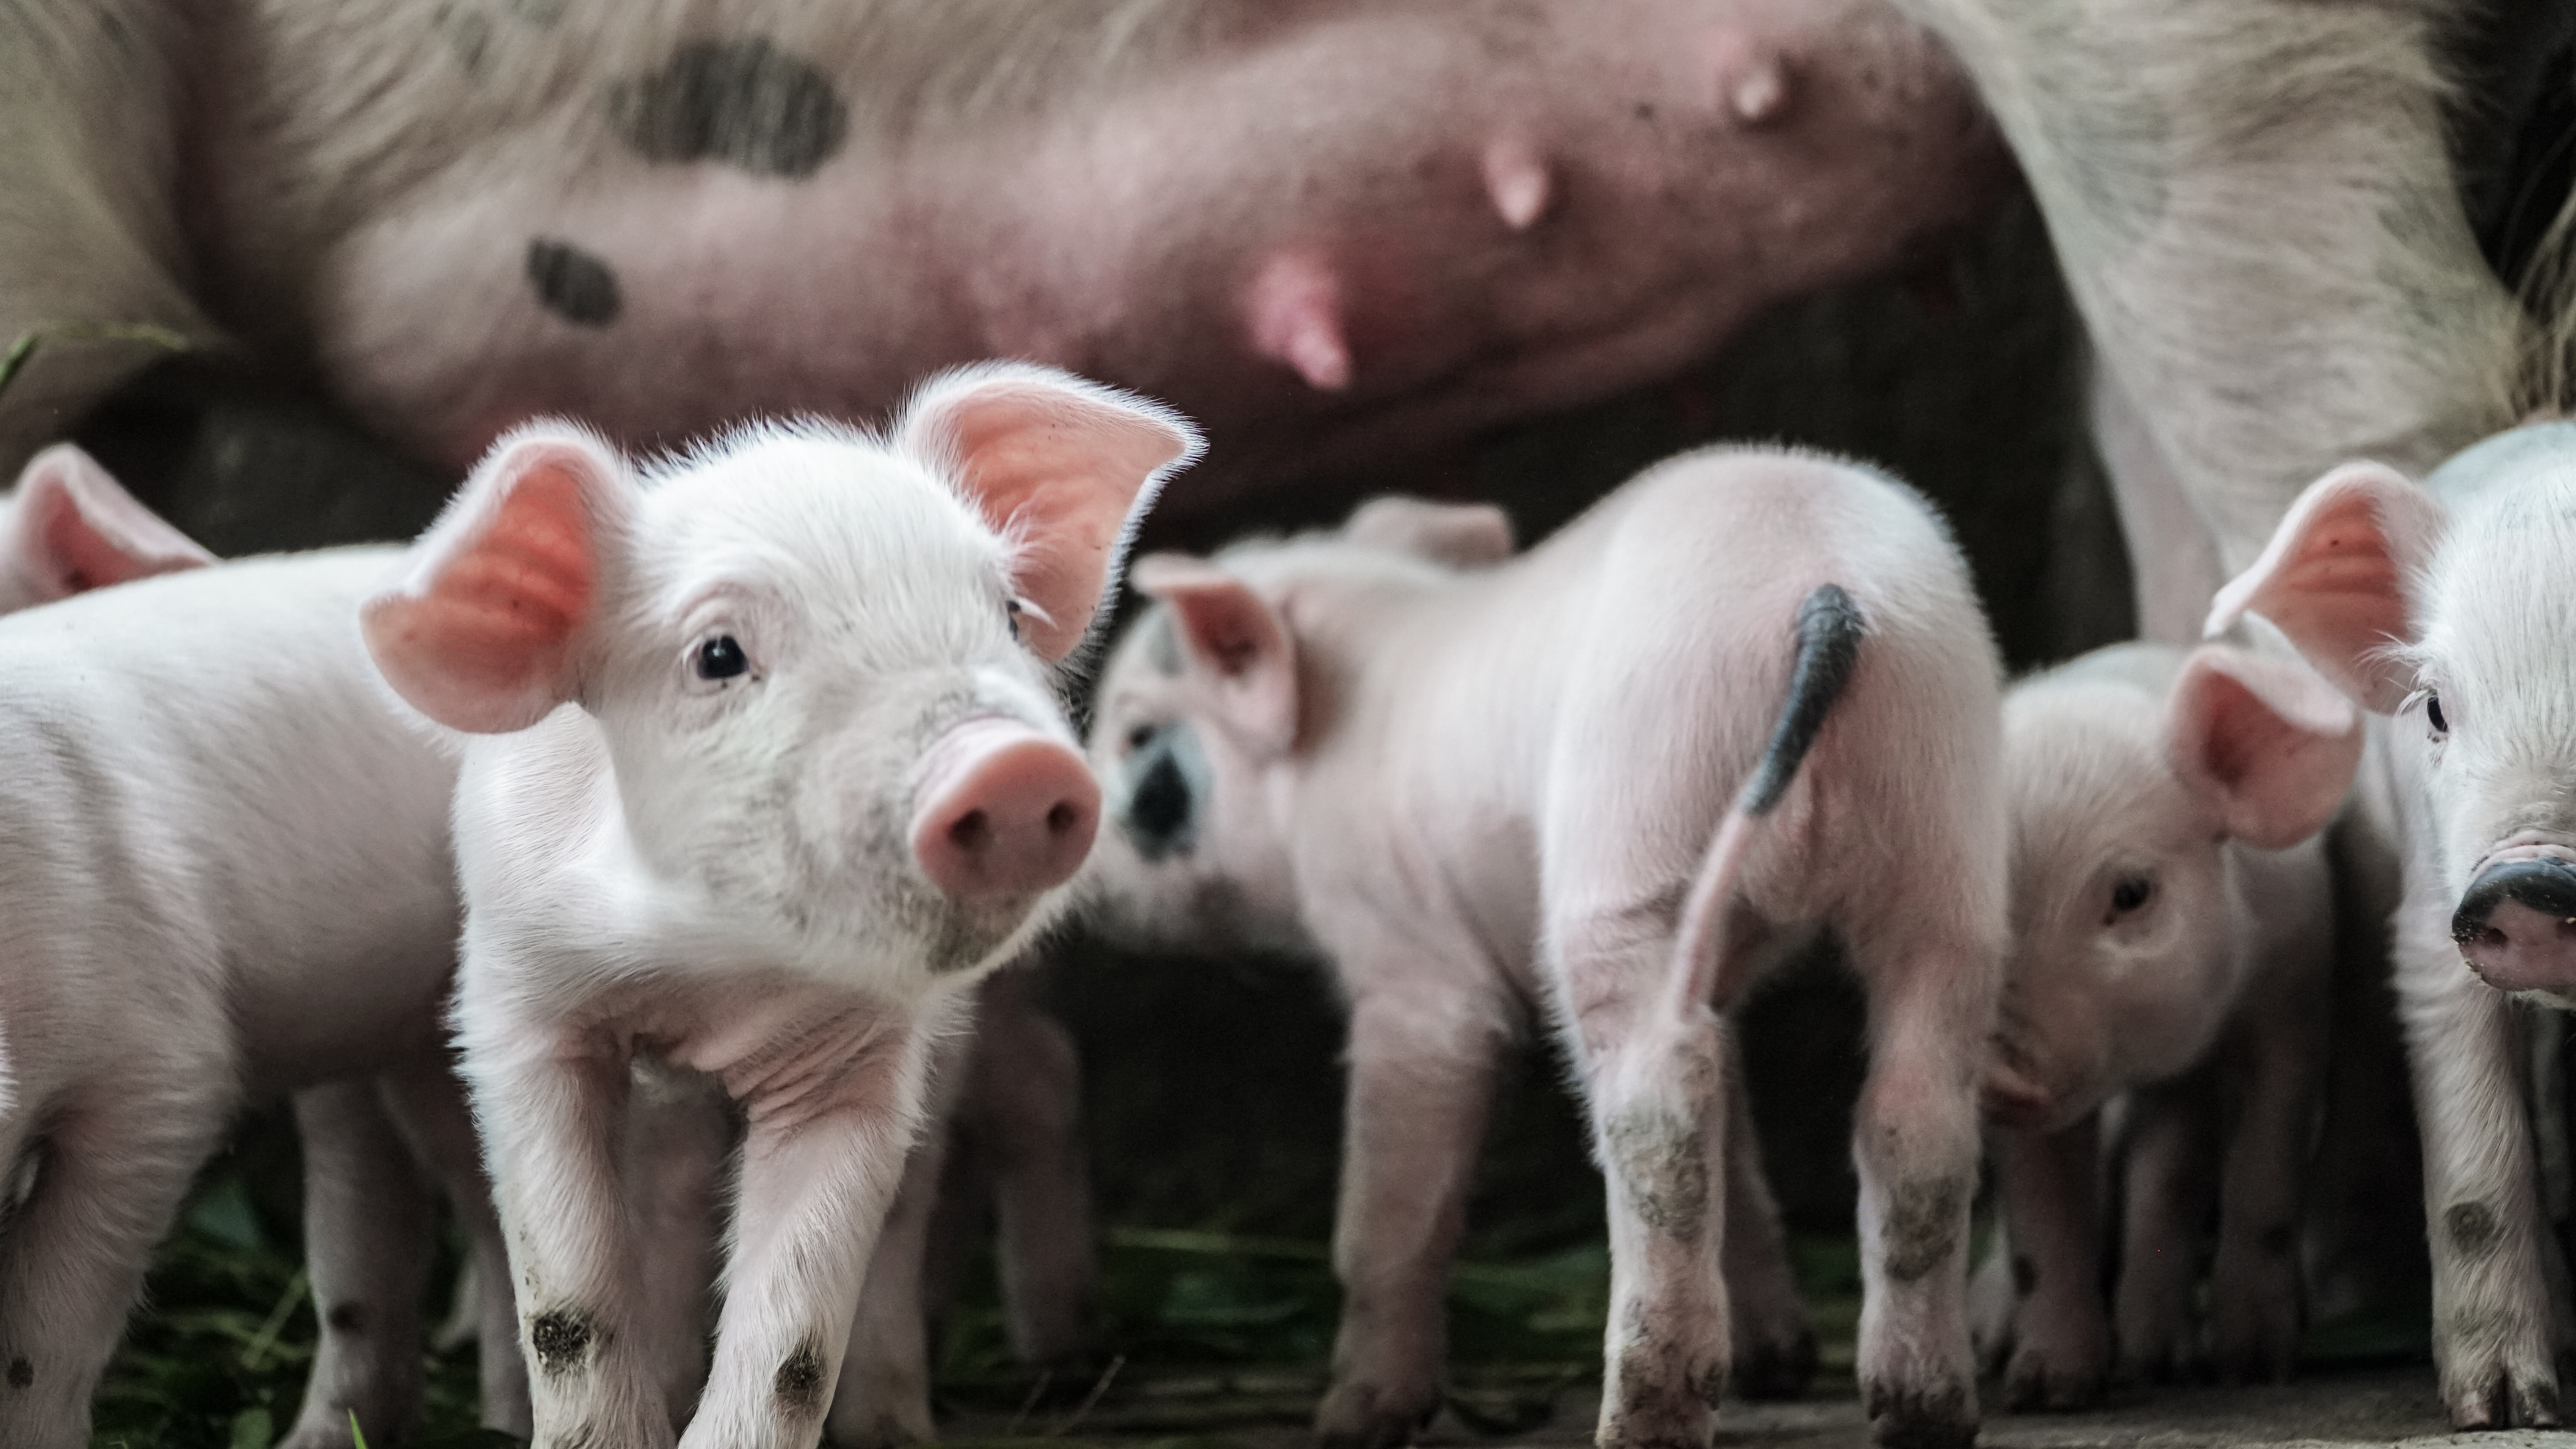 PERSPECTIVES: Can Nutrition Help Mitigate Unique Welfare Issues in Modern Sows?